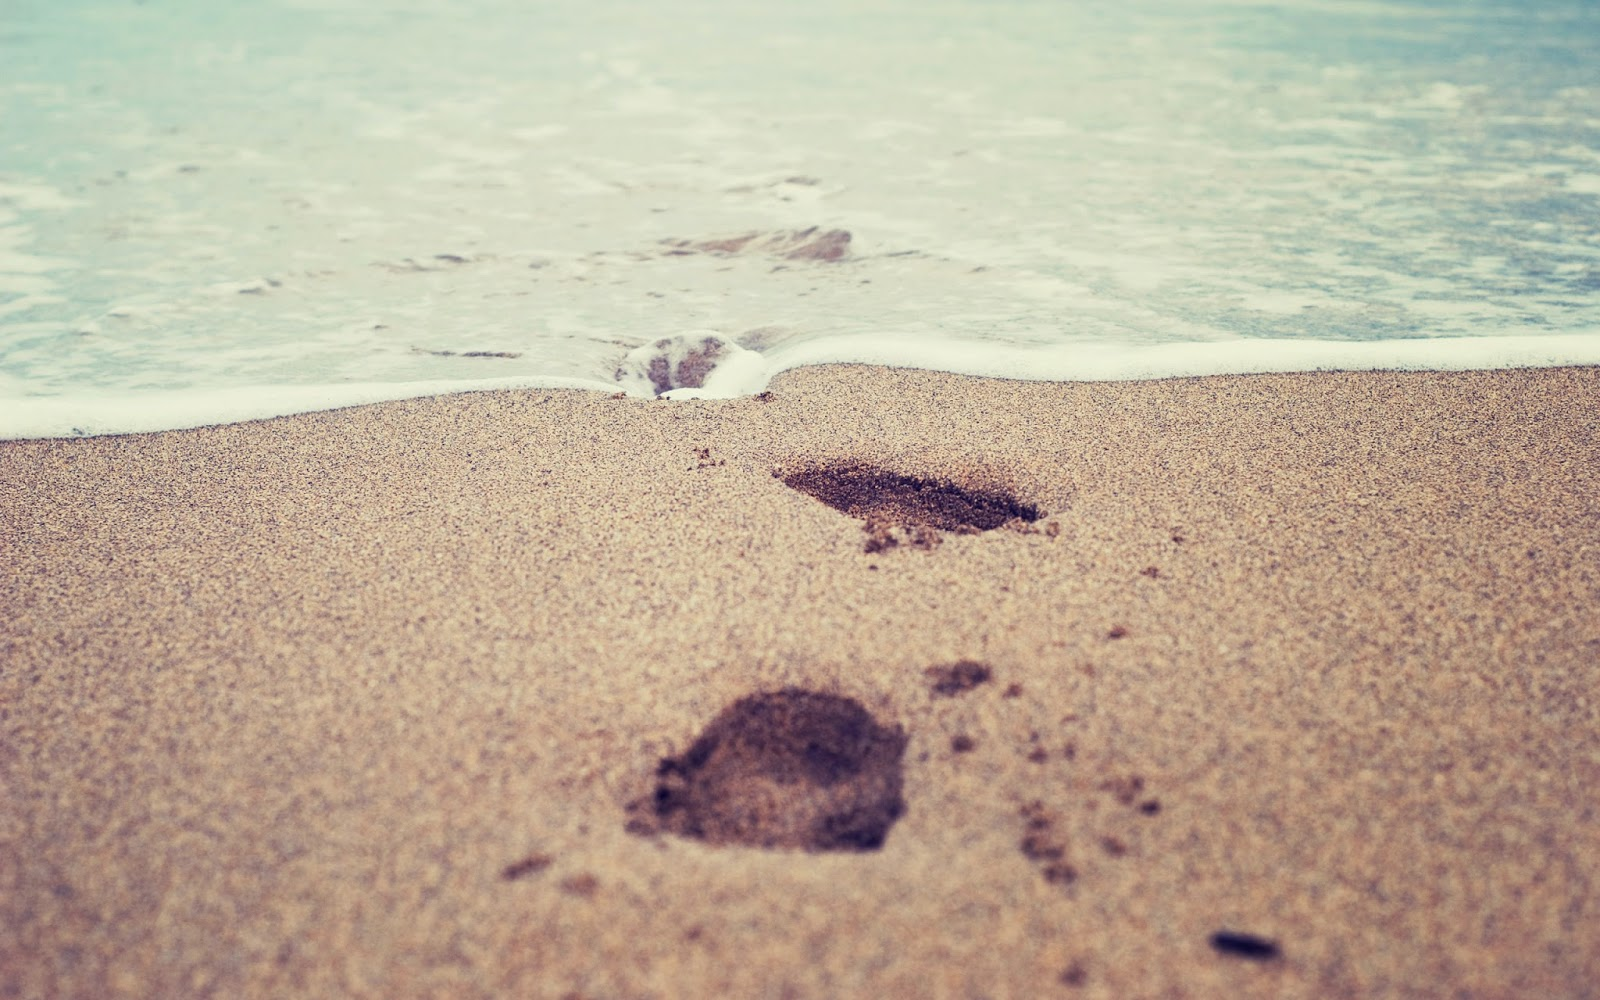 desktop hd wallpapers: footprint in sand beach desktop hd wallpaper